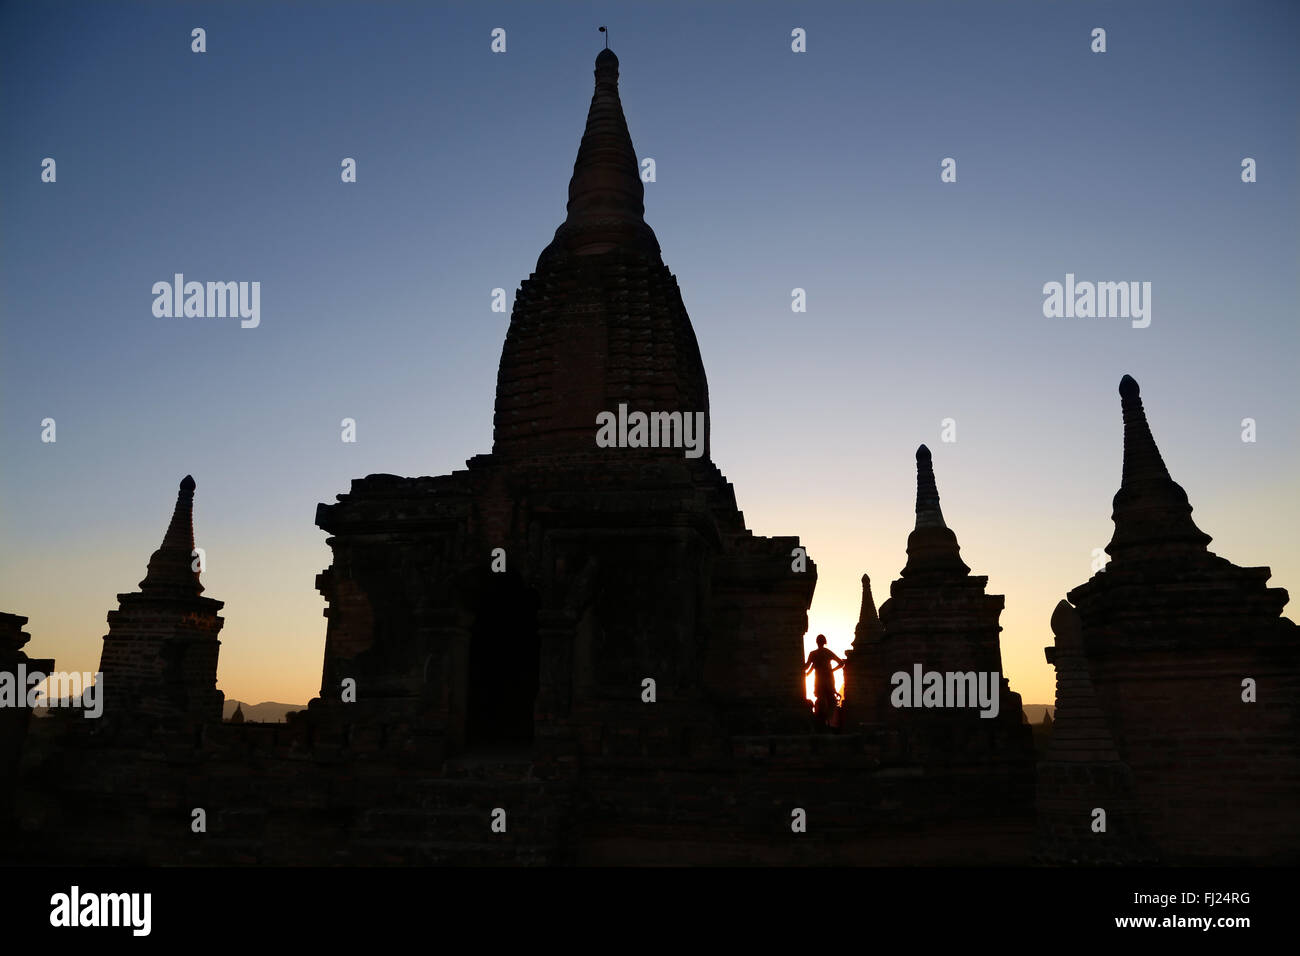 Myanmar Burma pictures of people and landscapes - Stock Image